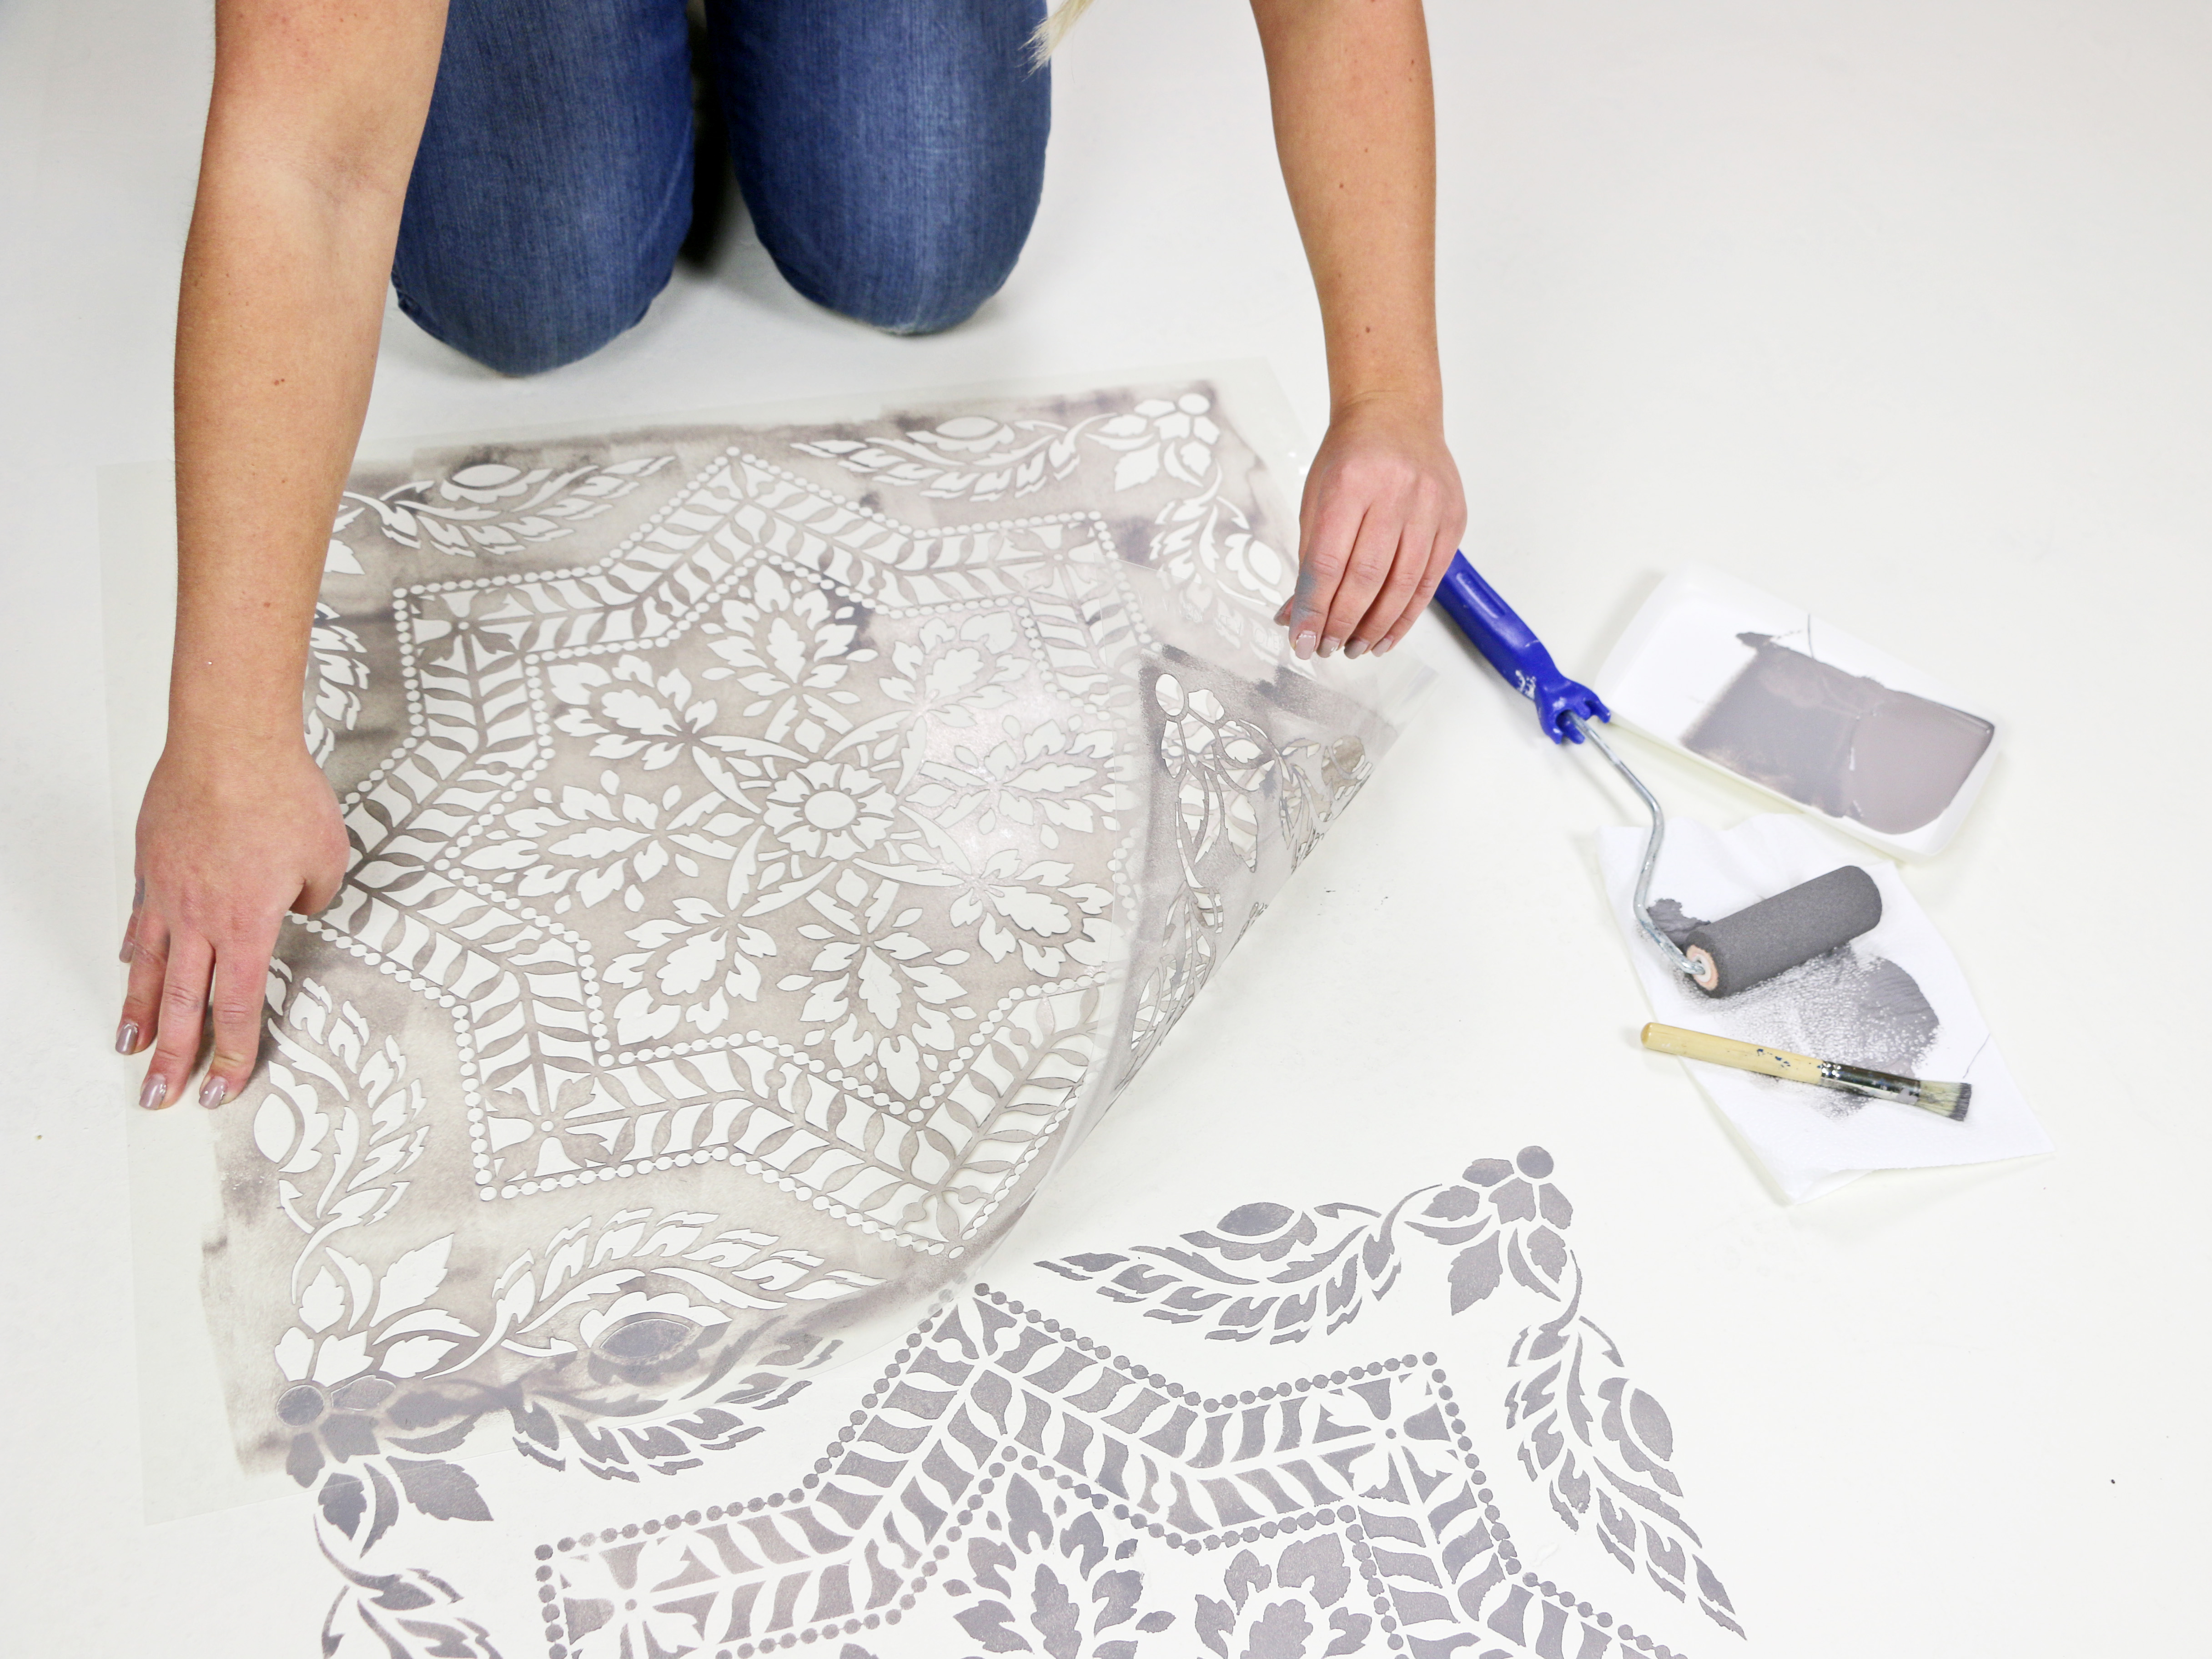 White and Gray Stenciled Floor